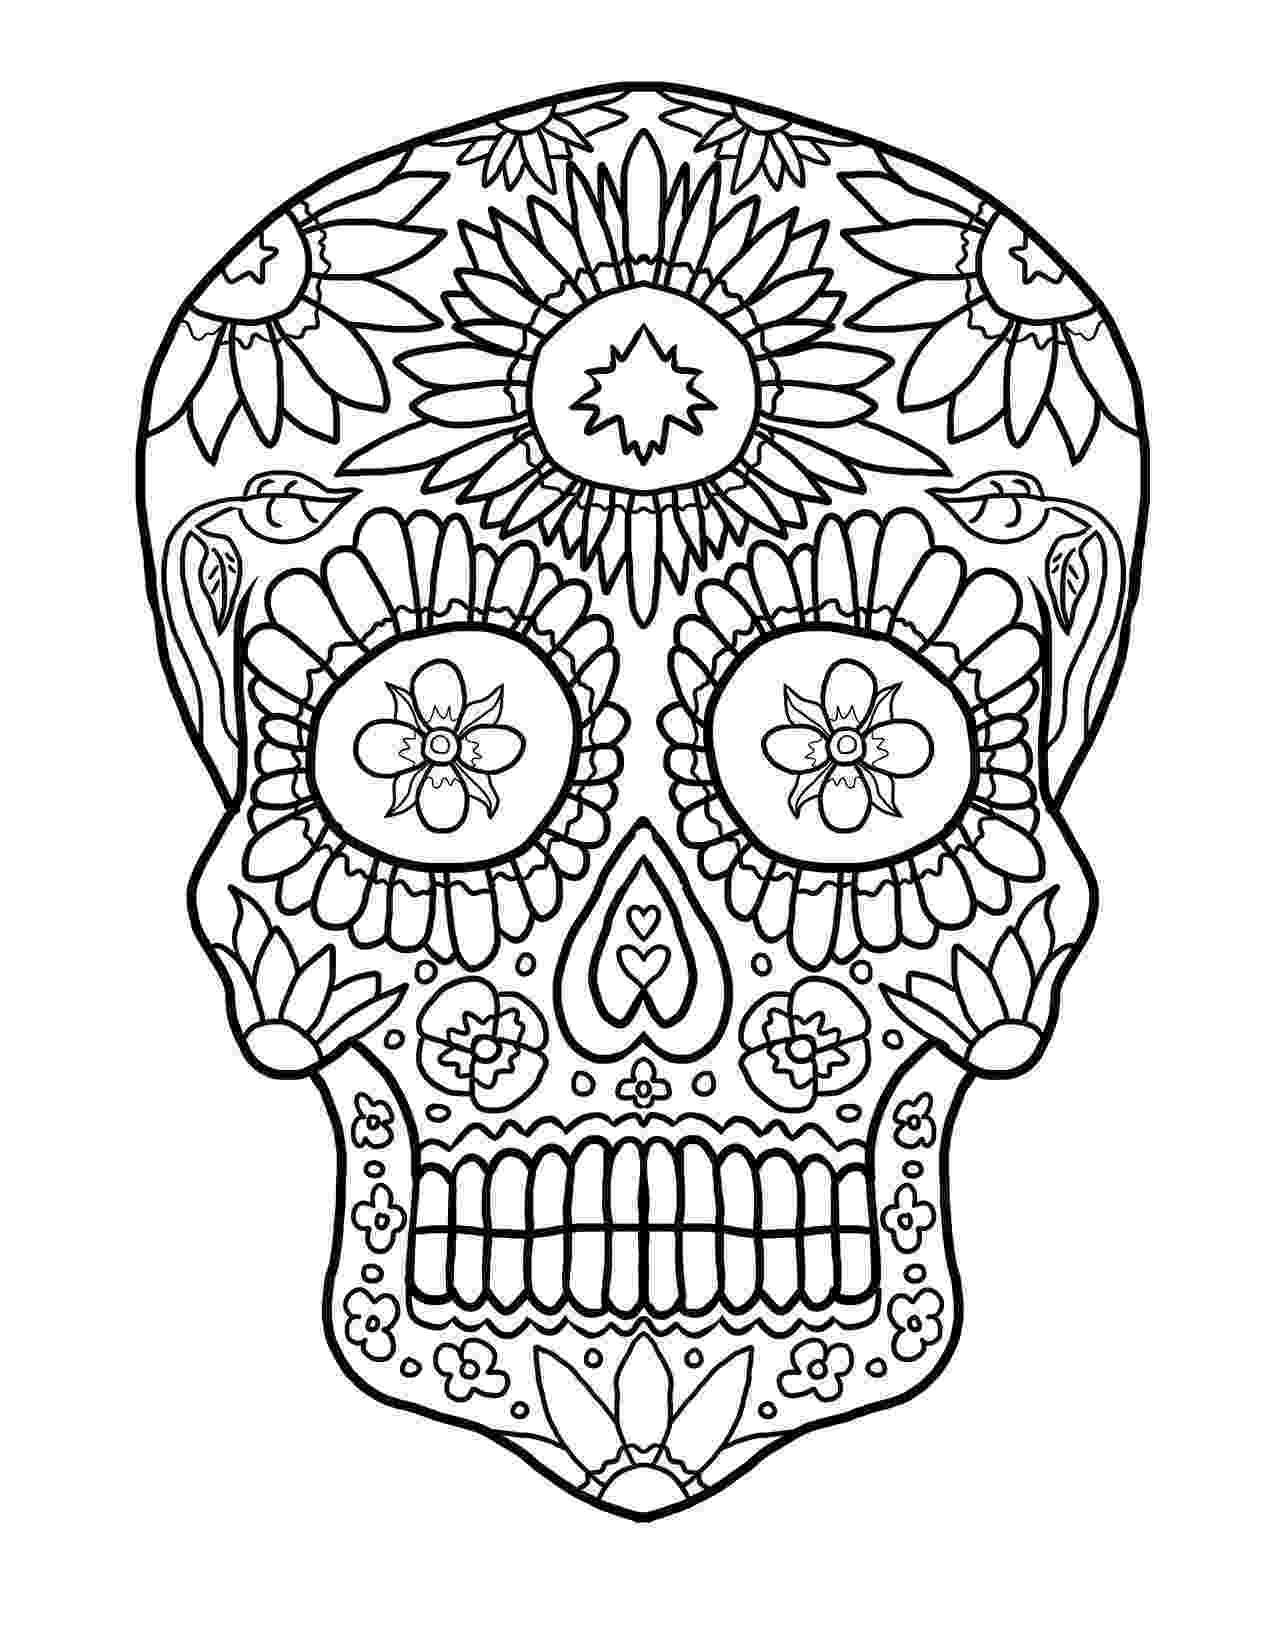 coloring pages for adults day of the dead free printable day of the dead coloring pages best day adults coloring for the pages dead of